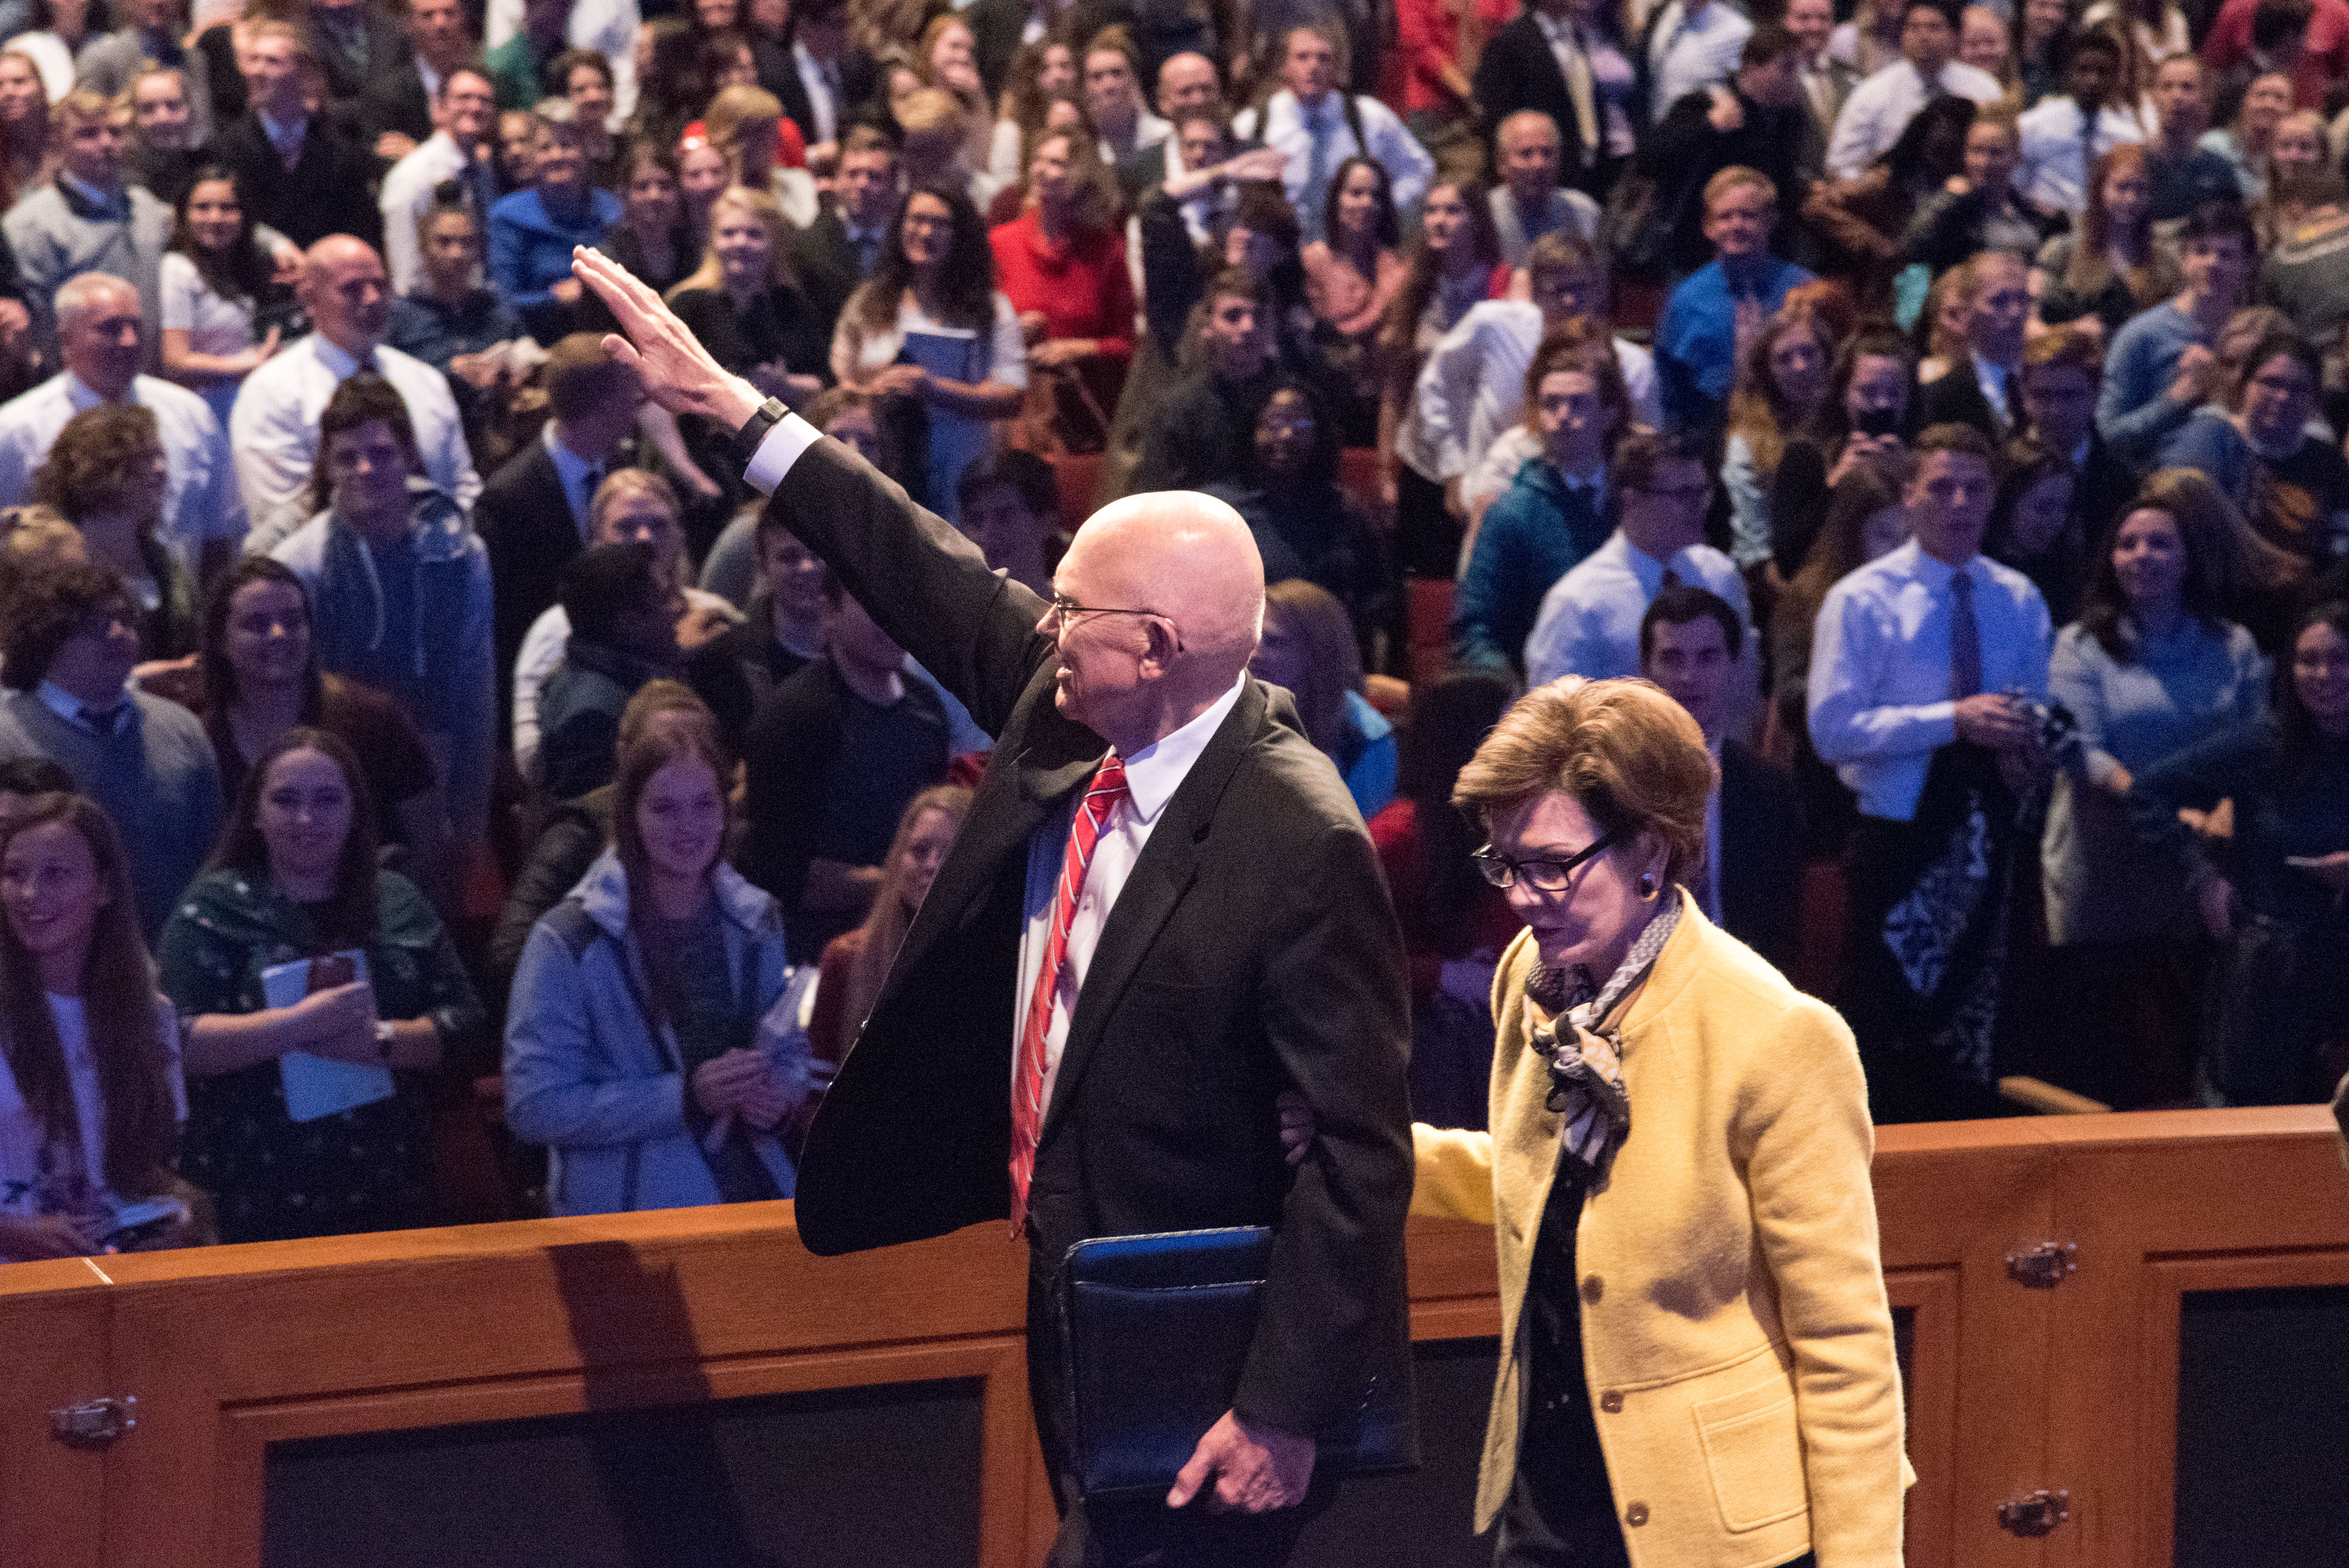 President Dallin H. Oaks of the First Presidency waves to BYU-Idaho students who attended his BYU-Idaho campus devotional talk on Oct. 30.